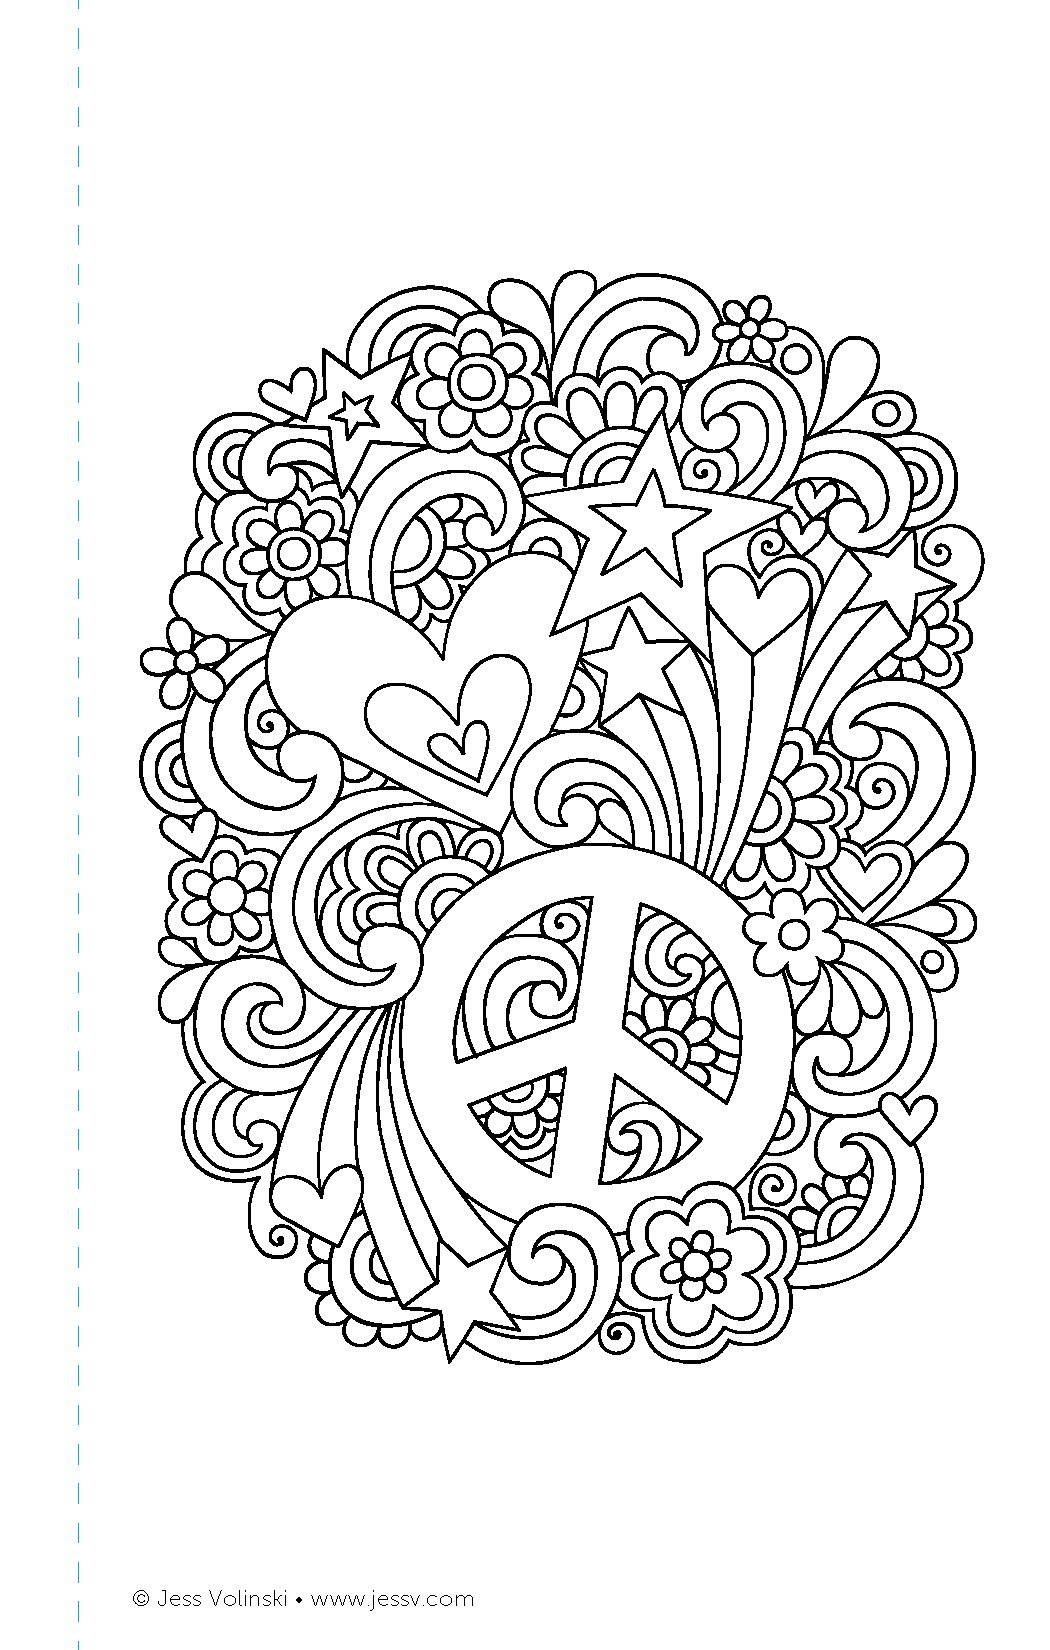 Color Cute Coloring Book Perfectly Portable Pages On The